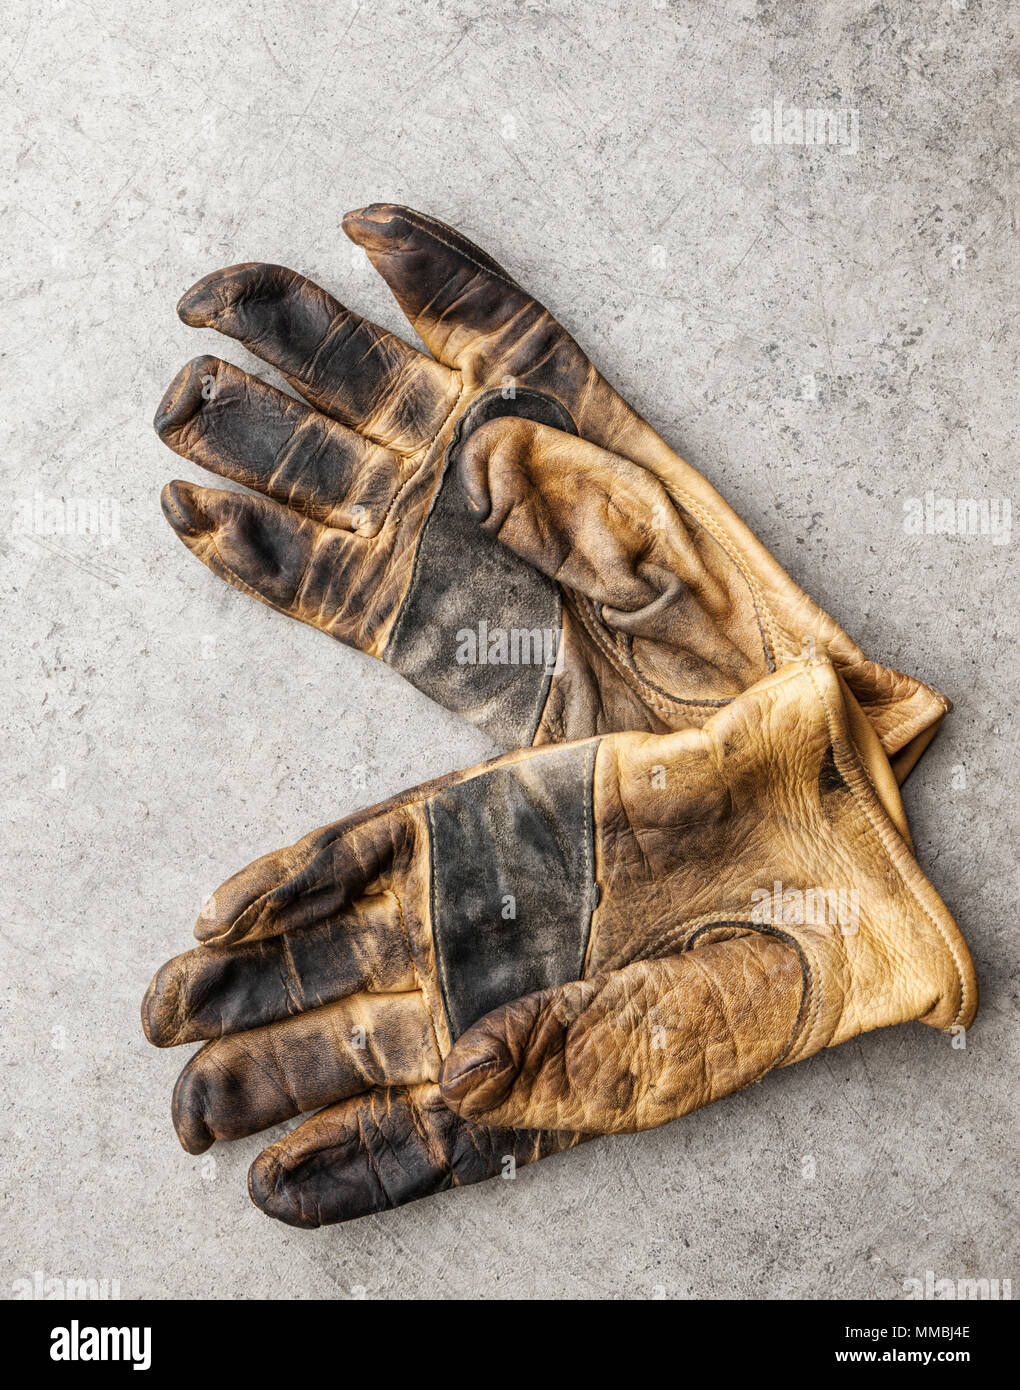 Close-up of a pair of used work gloves in a shop - Stock Image